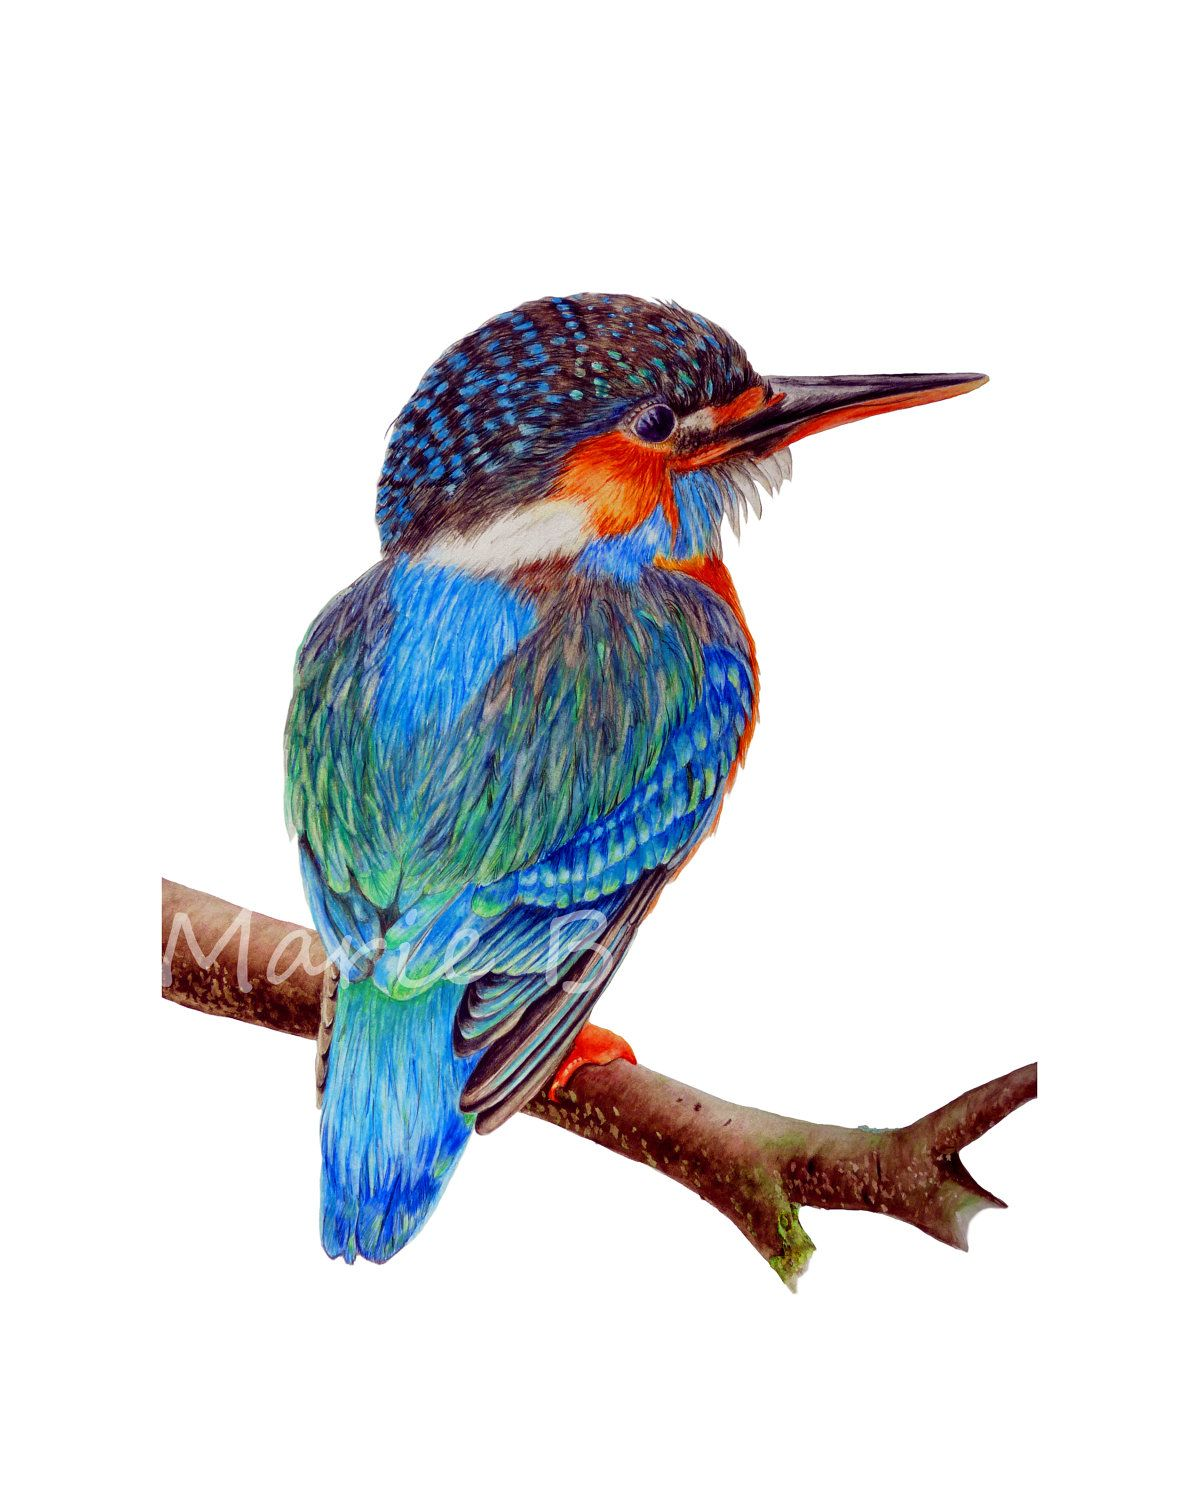 Kingfisher - fine art print, watercolour print